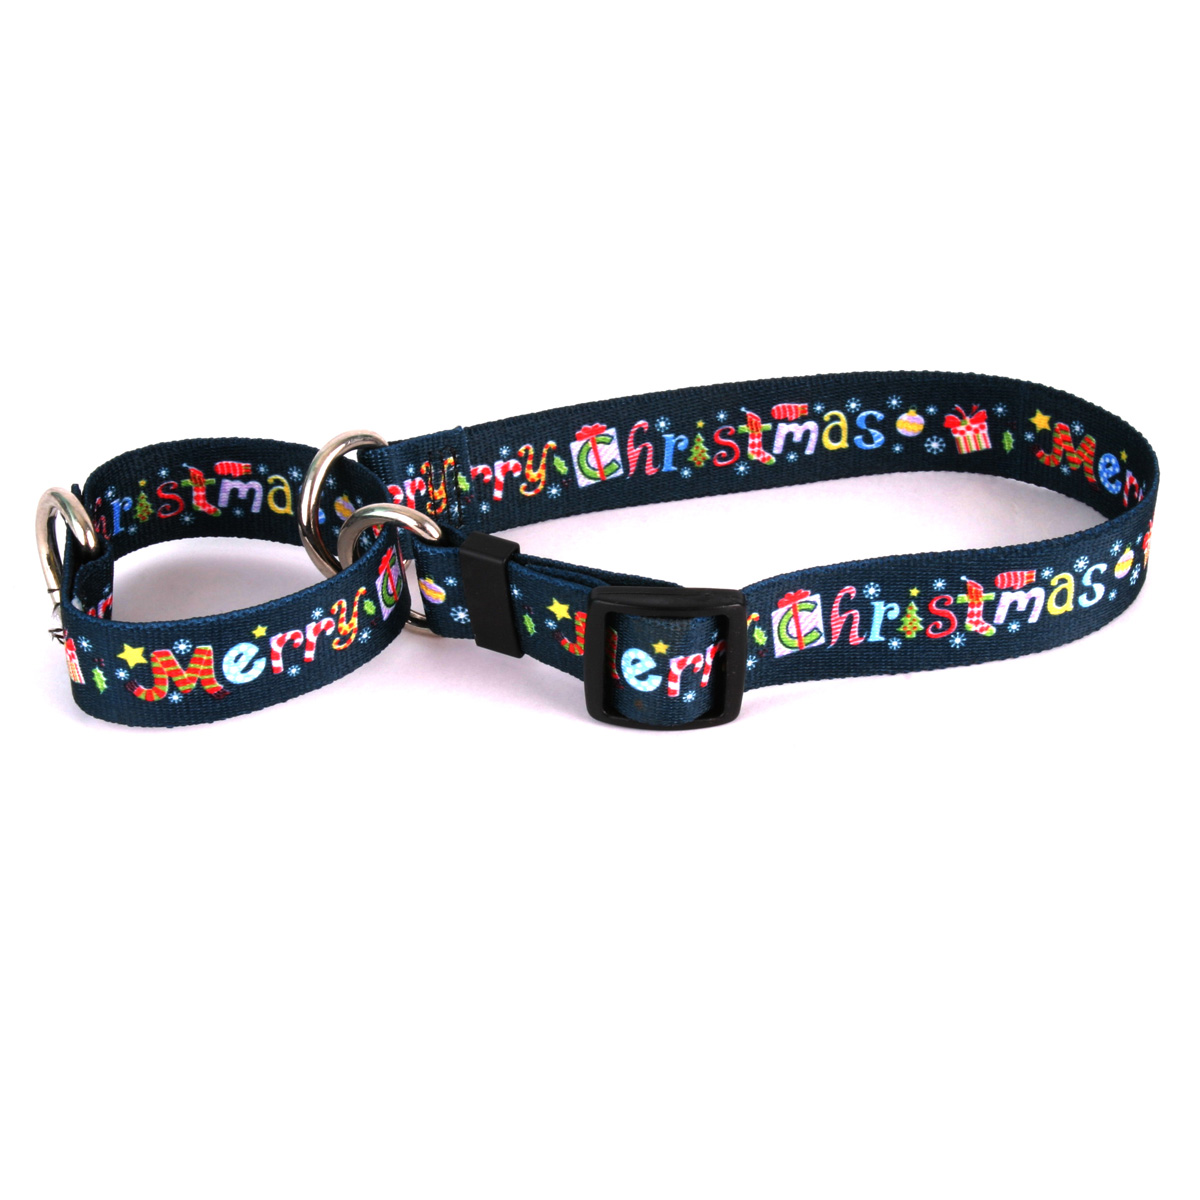 Merry Christmas Martingale Collar